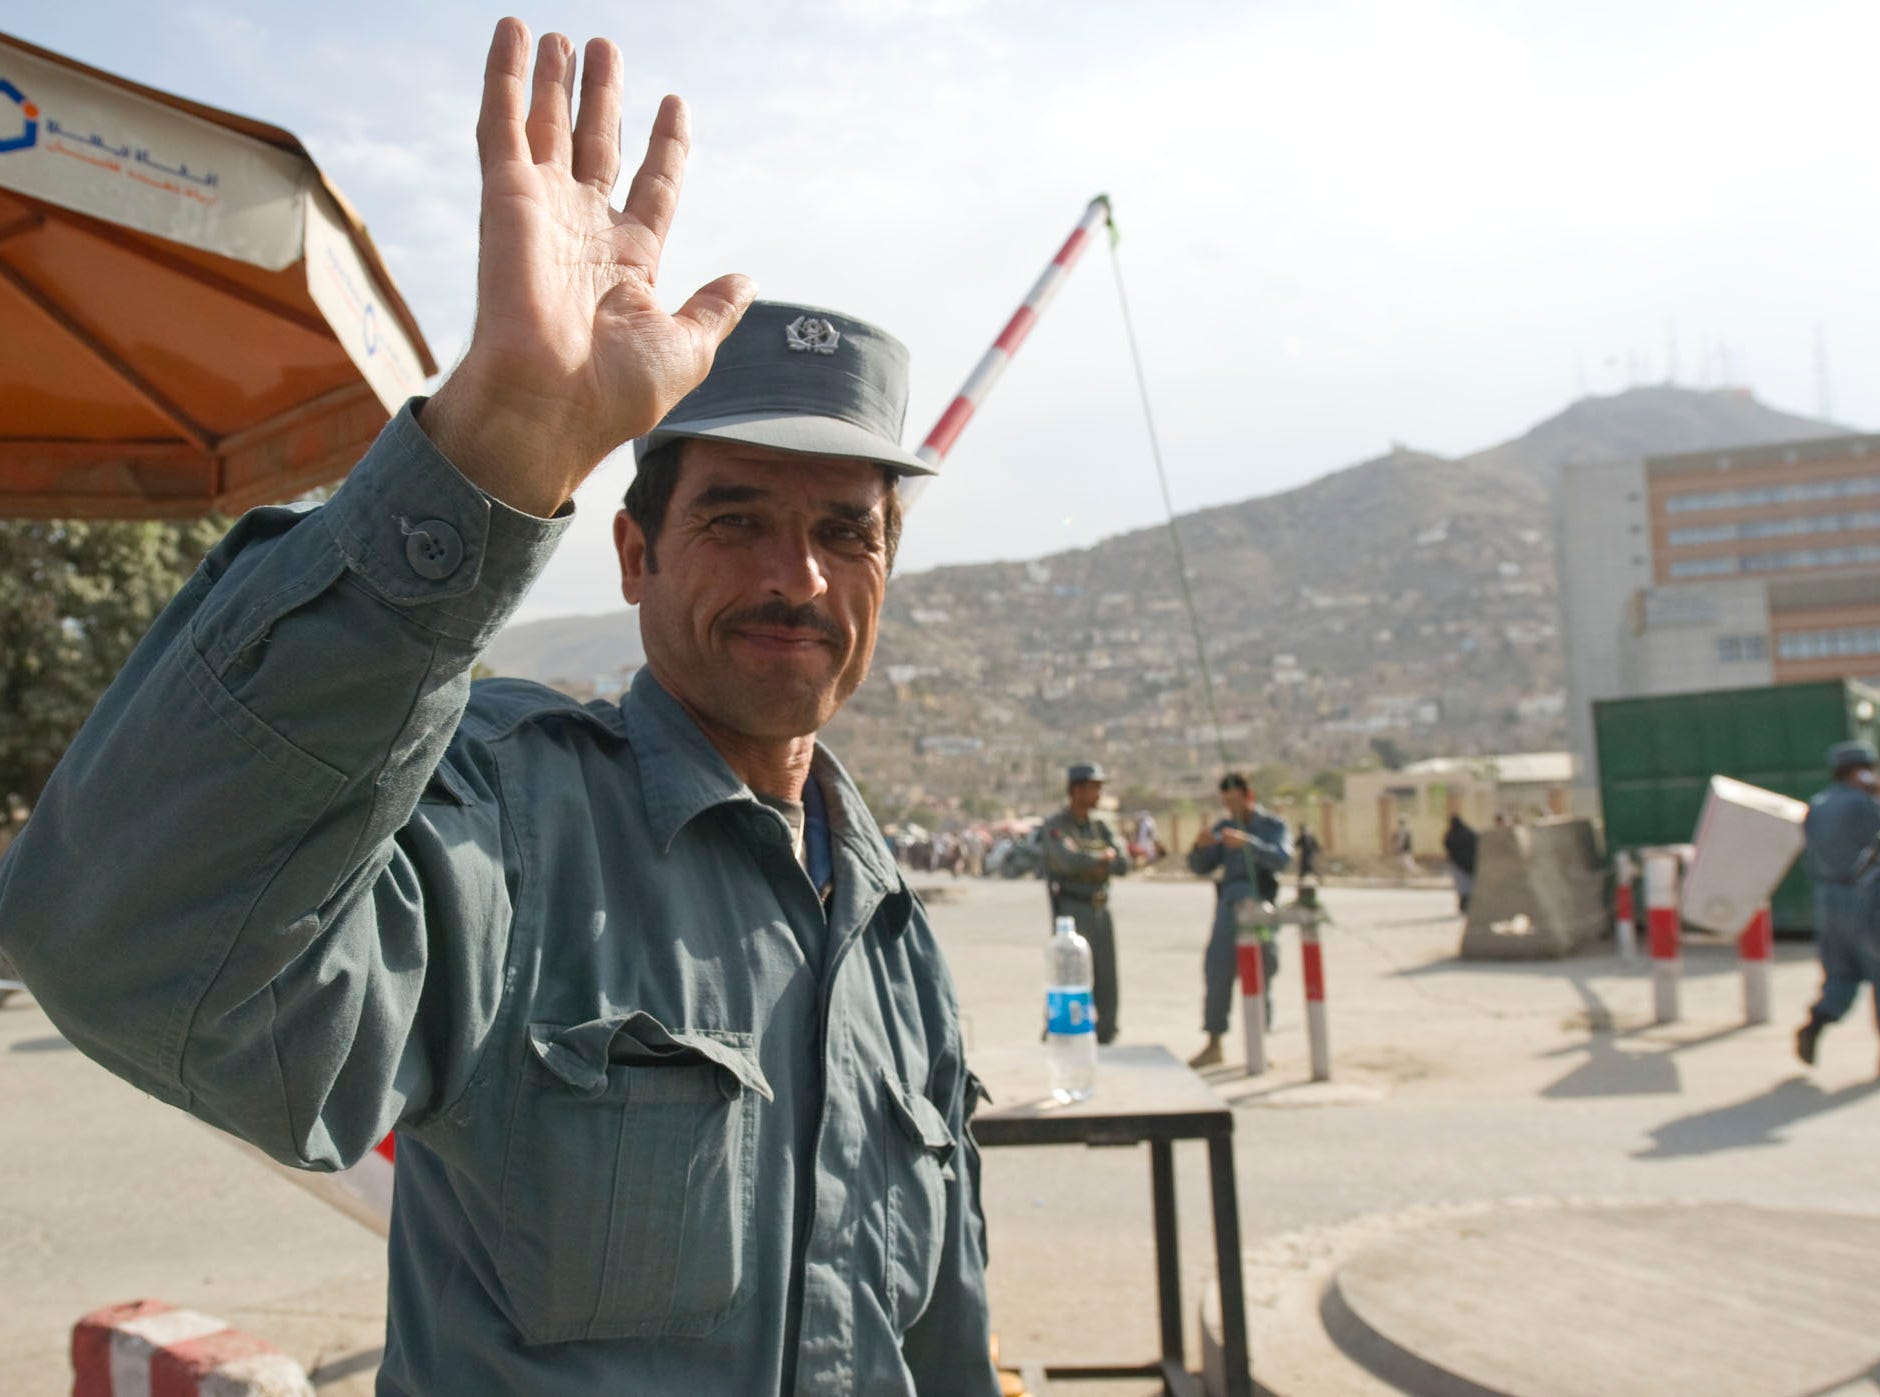 An Afghan Uniform Police officer waves from his checkpoint in downtown Kabul on Tuesday, September 28, 2010. Only a few years ago, Afghans who traveled these roads at night were often shot at or worse, but the number of incidents has declined as more police and Afghan National Army soldiers are trained.